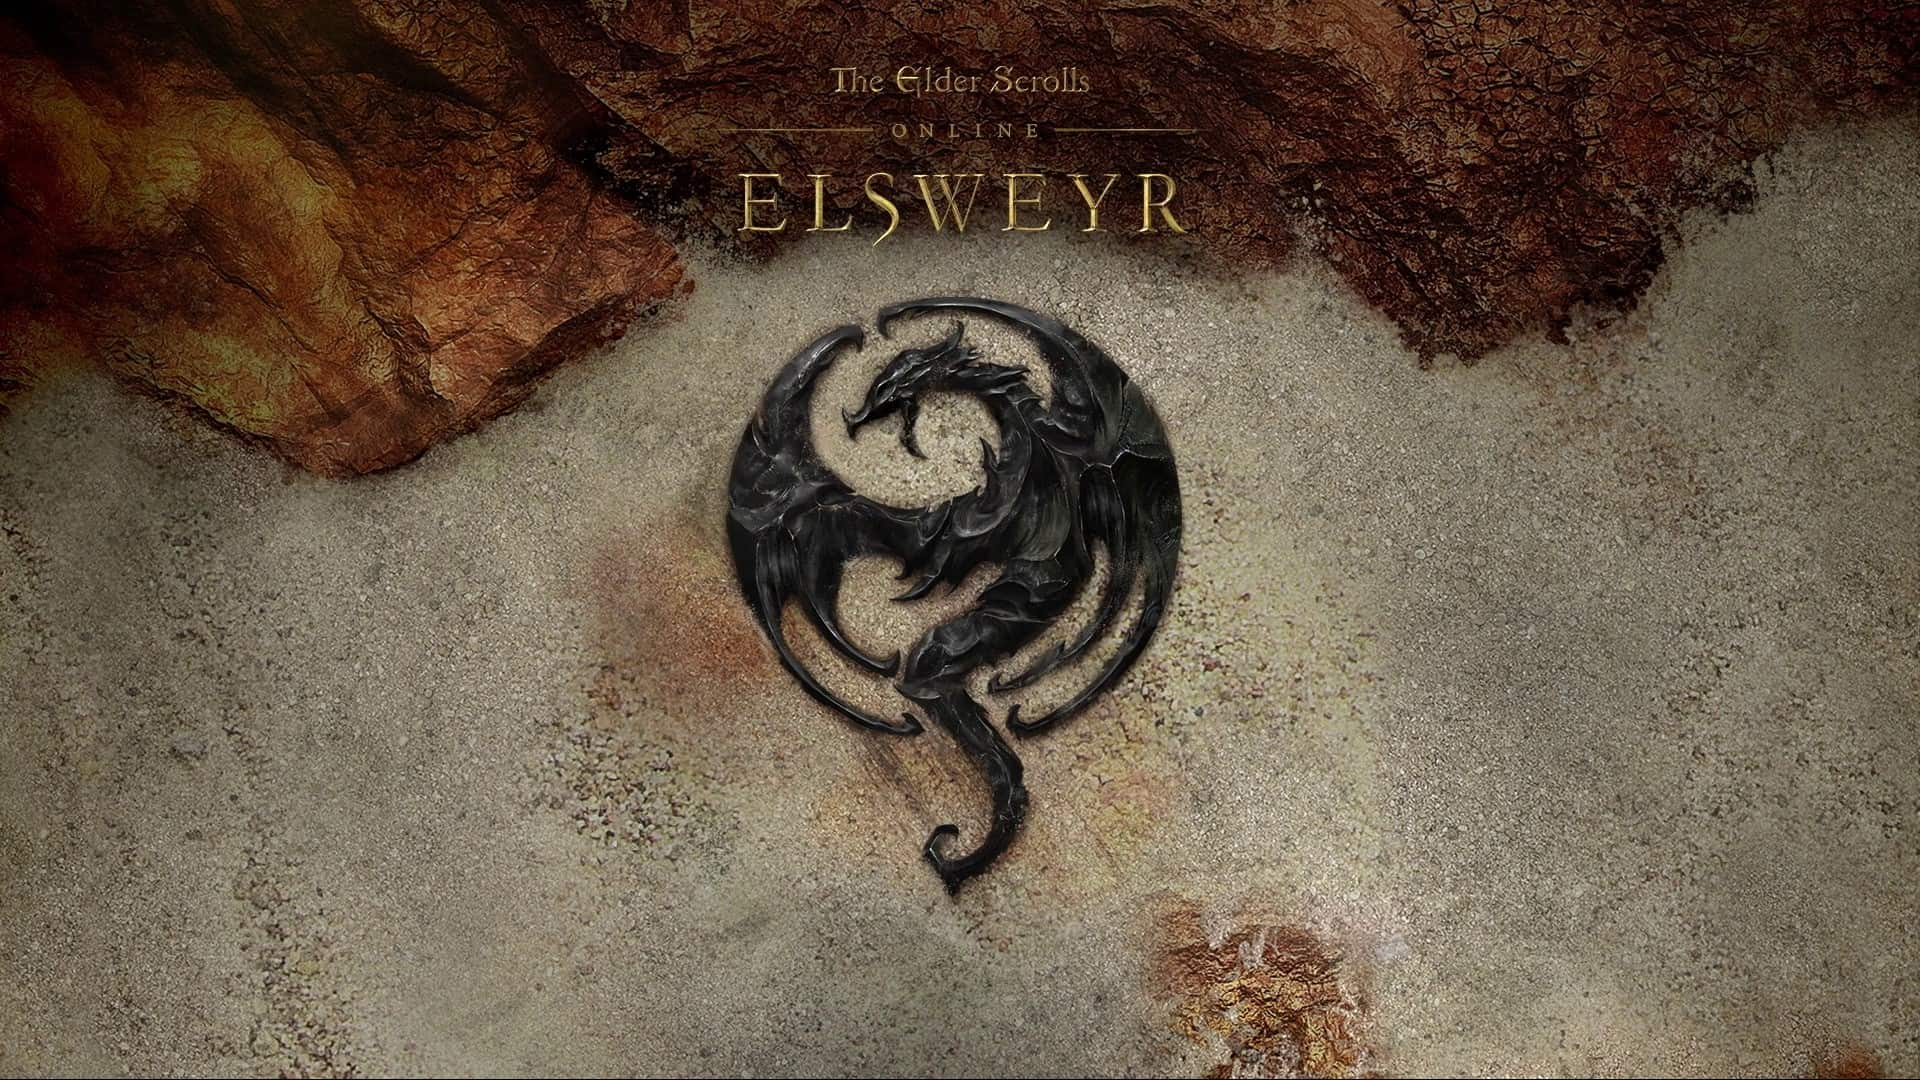 Elder Scrolls Online – PC/MAC Early Access Elsweyr Chapter Available Now